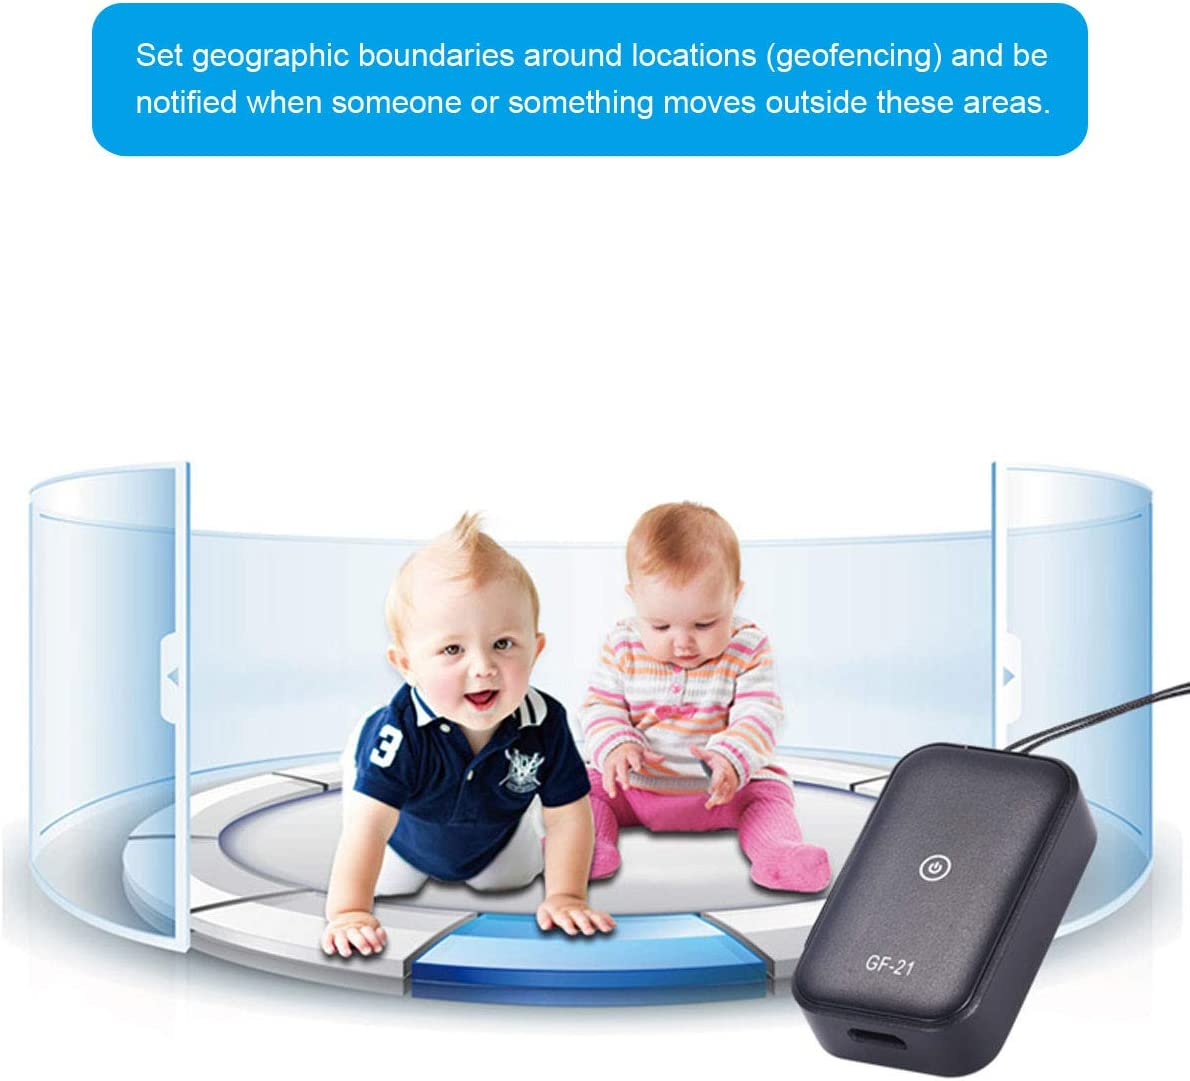 GPS Tracker SIKVIO Mini Portable Car GPS Tracker with SOS Locator Hidden Track Finder Real-time Tracking Device for Vehicle Kids Cat Dog Key Motorcycles Bike